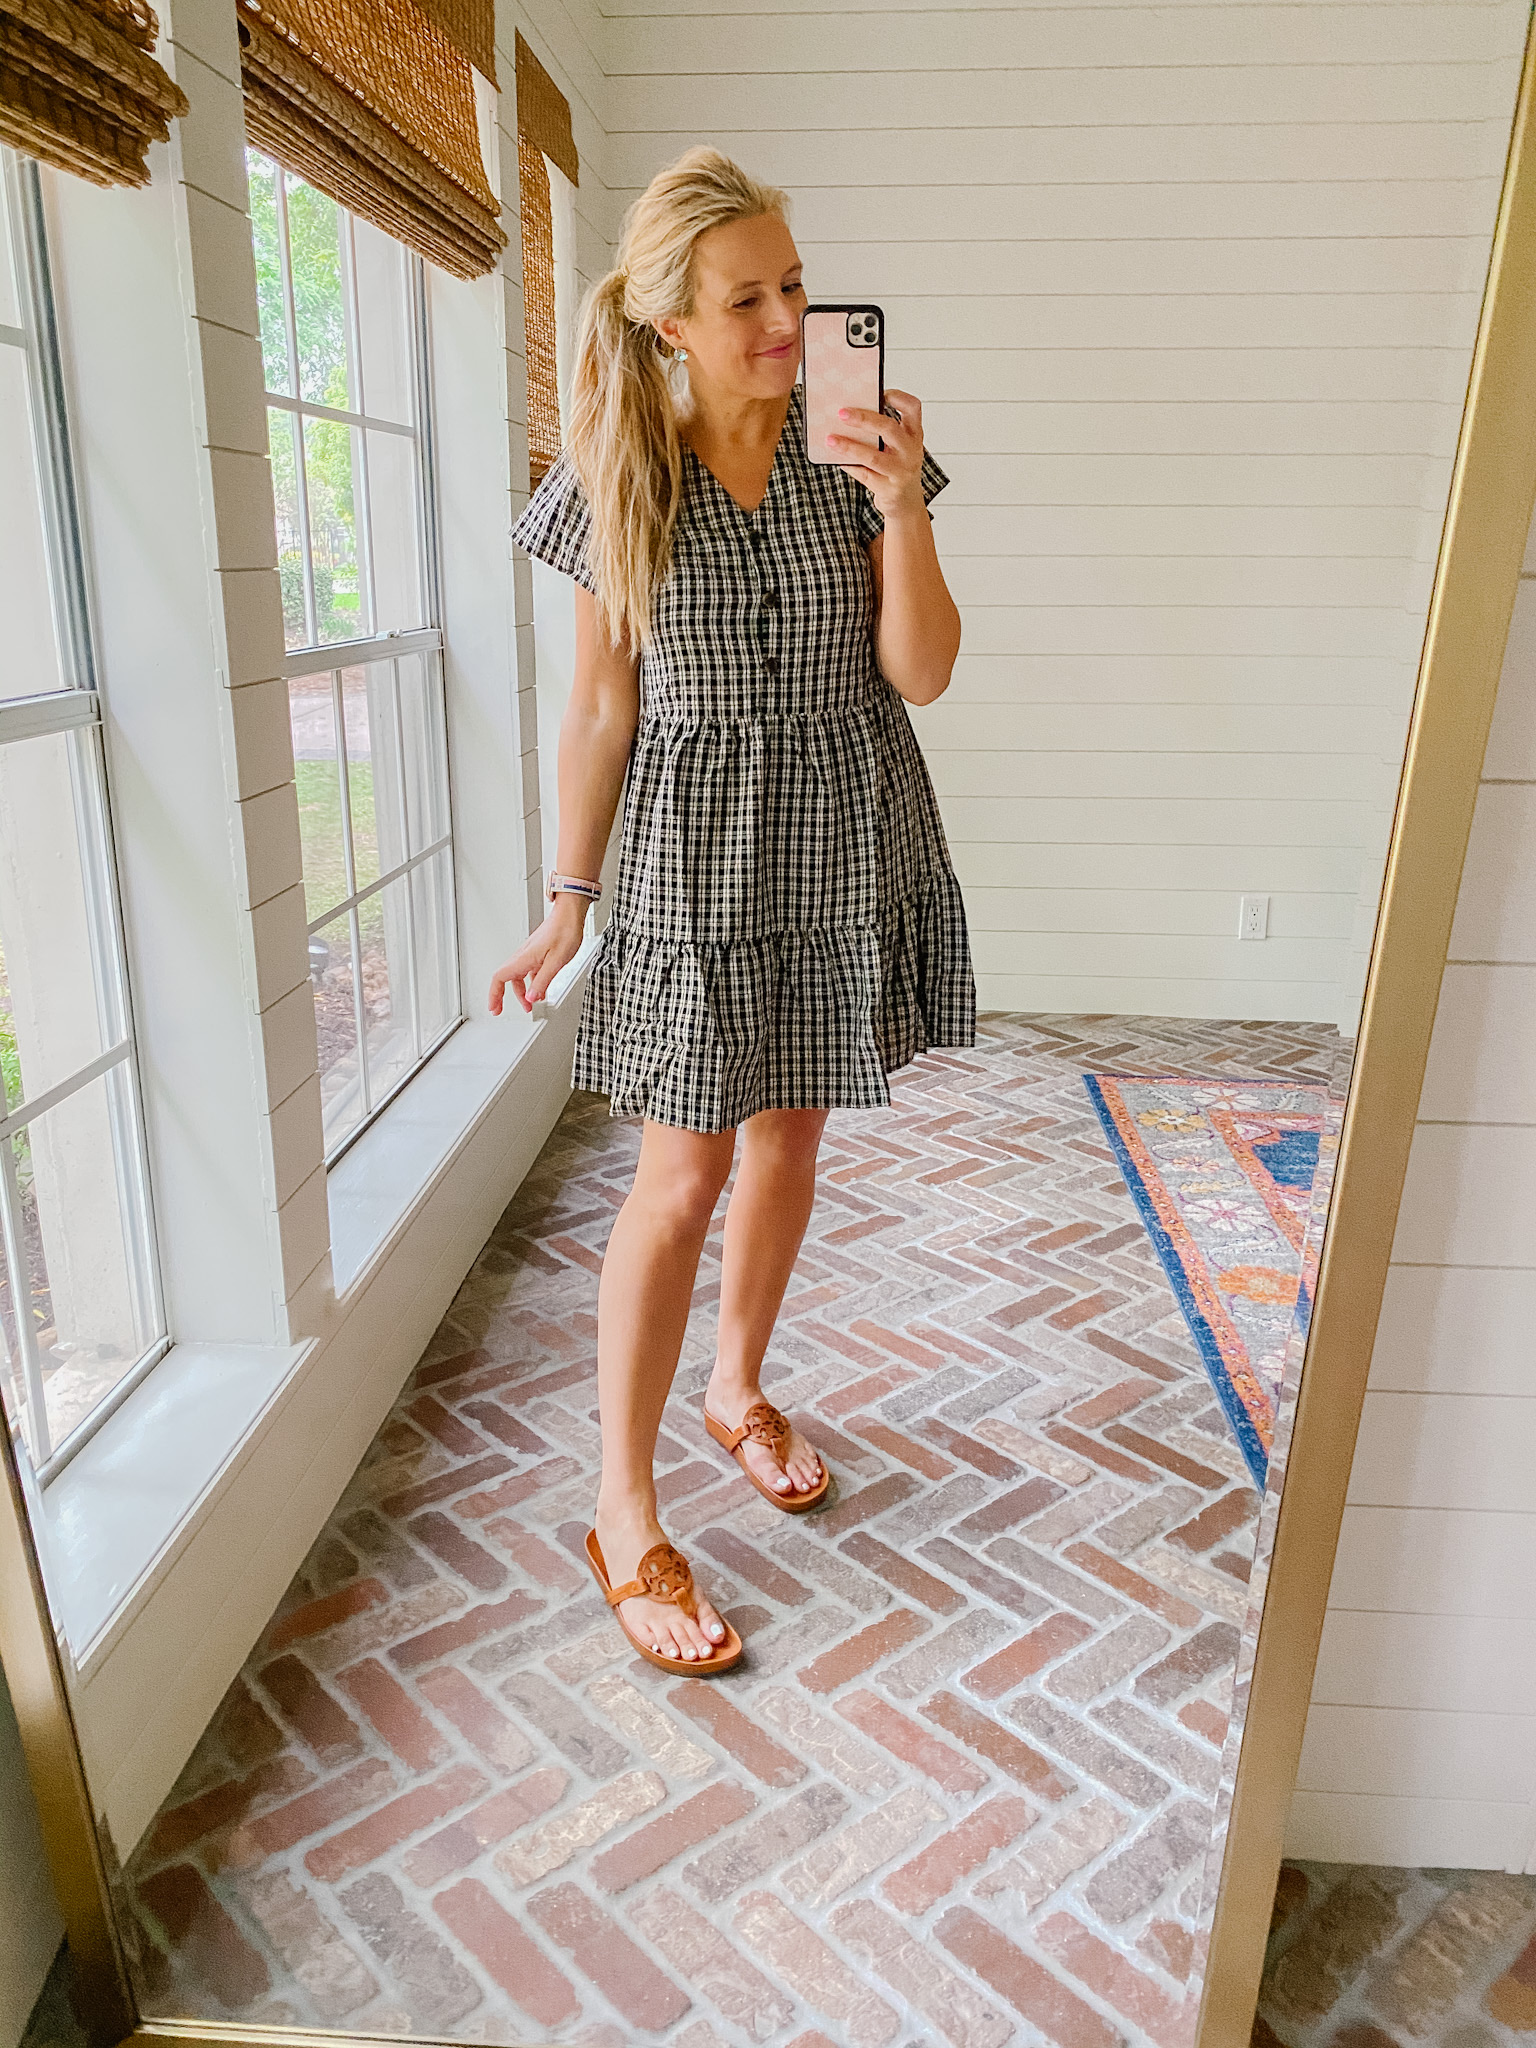 Loft Clothing by popular Houston fashion blog, The House of Fancy: image of a woman wearing a Loft black and white plaid dress with brown Tory Burch slide sandals.